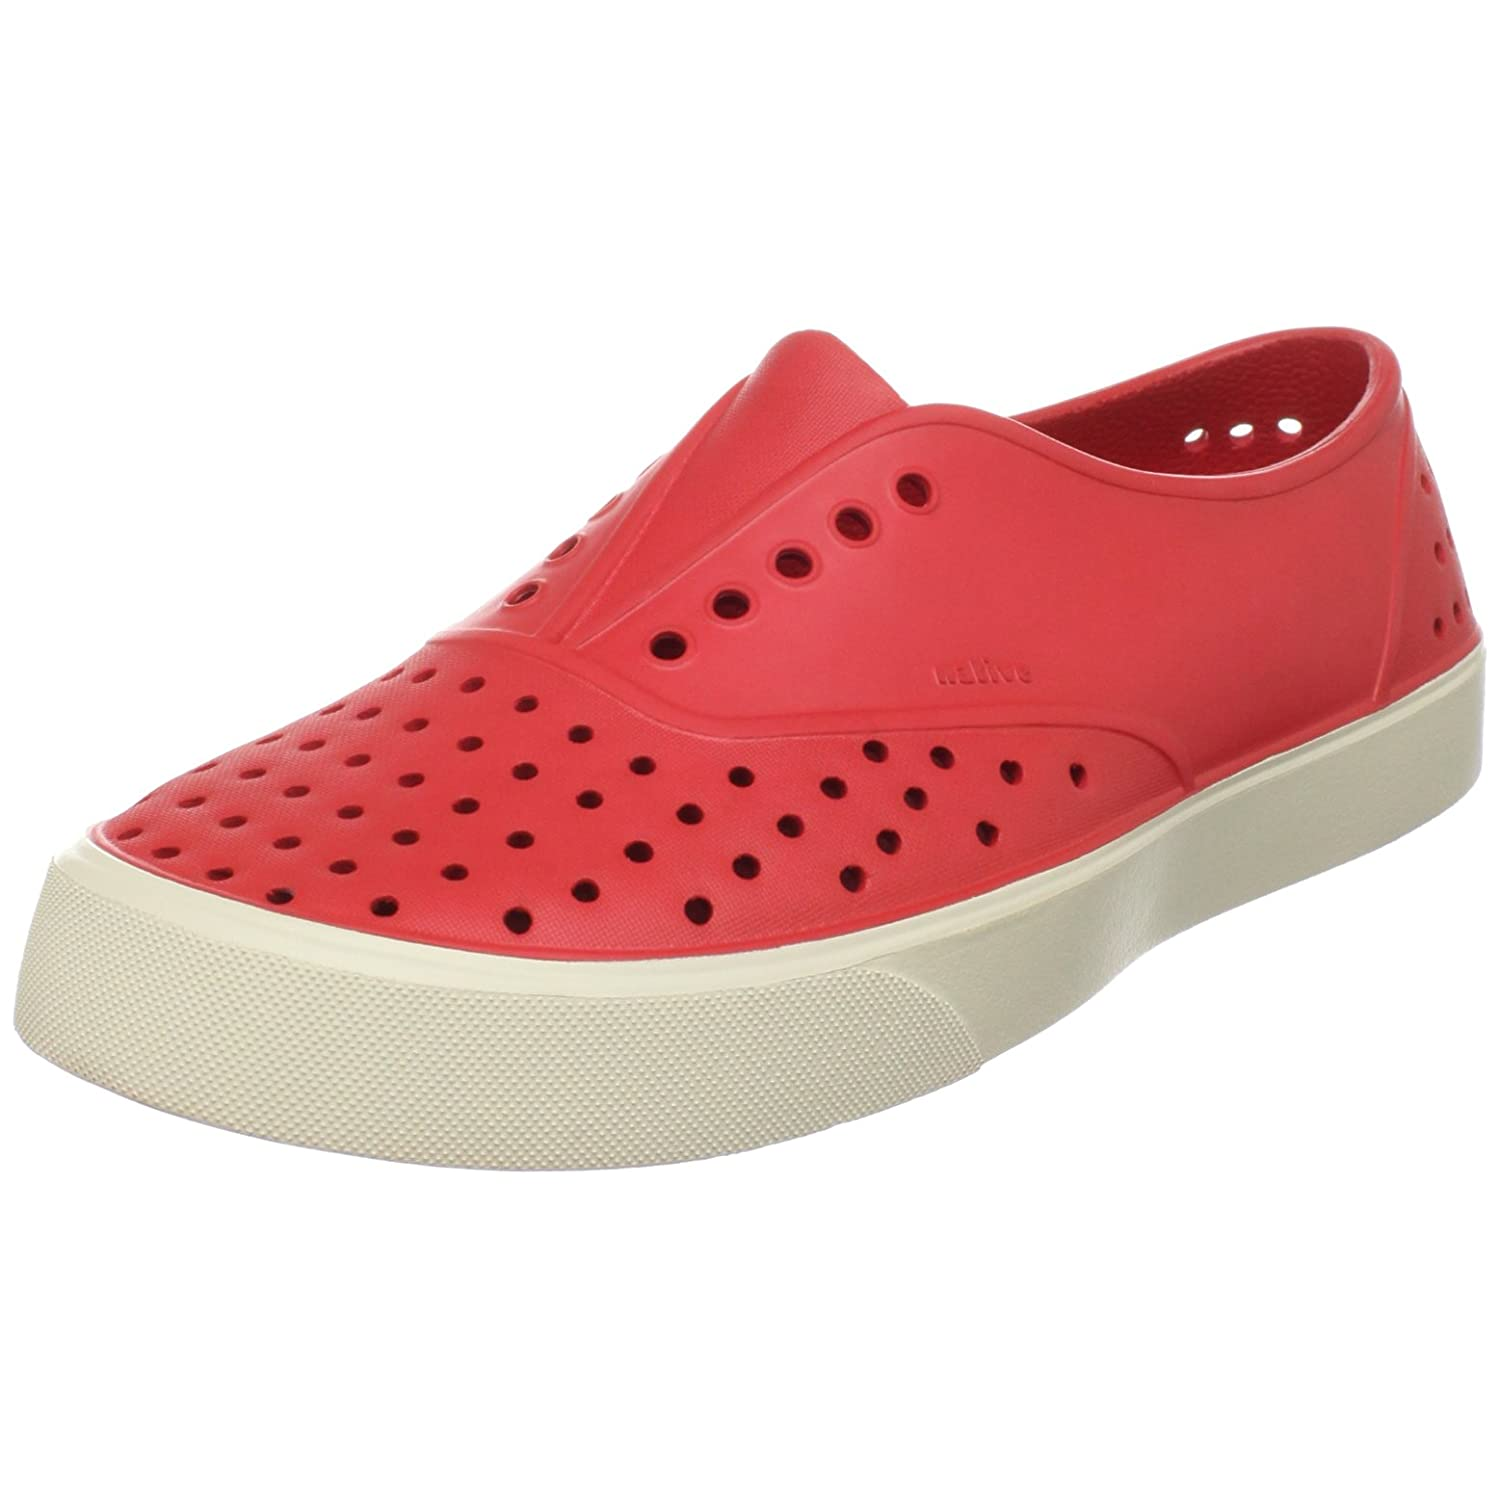 Native Miller Shoes Torch Red